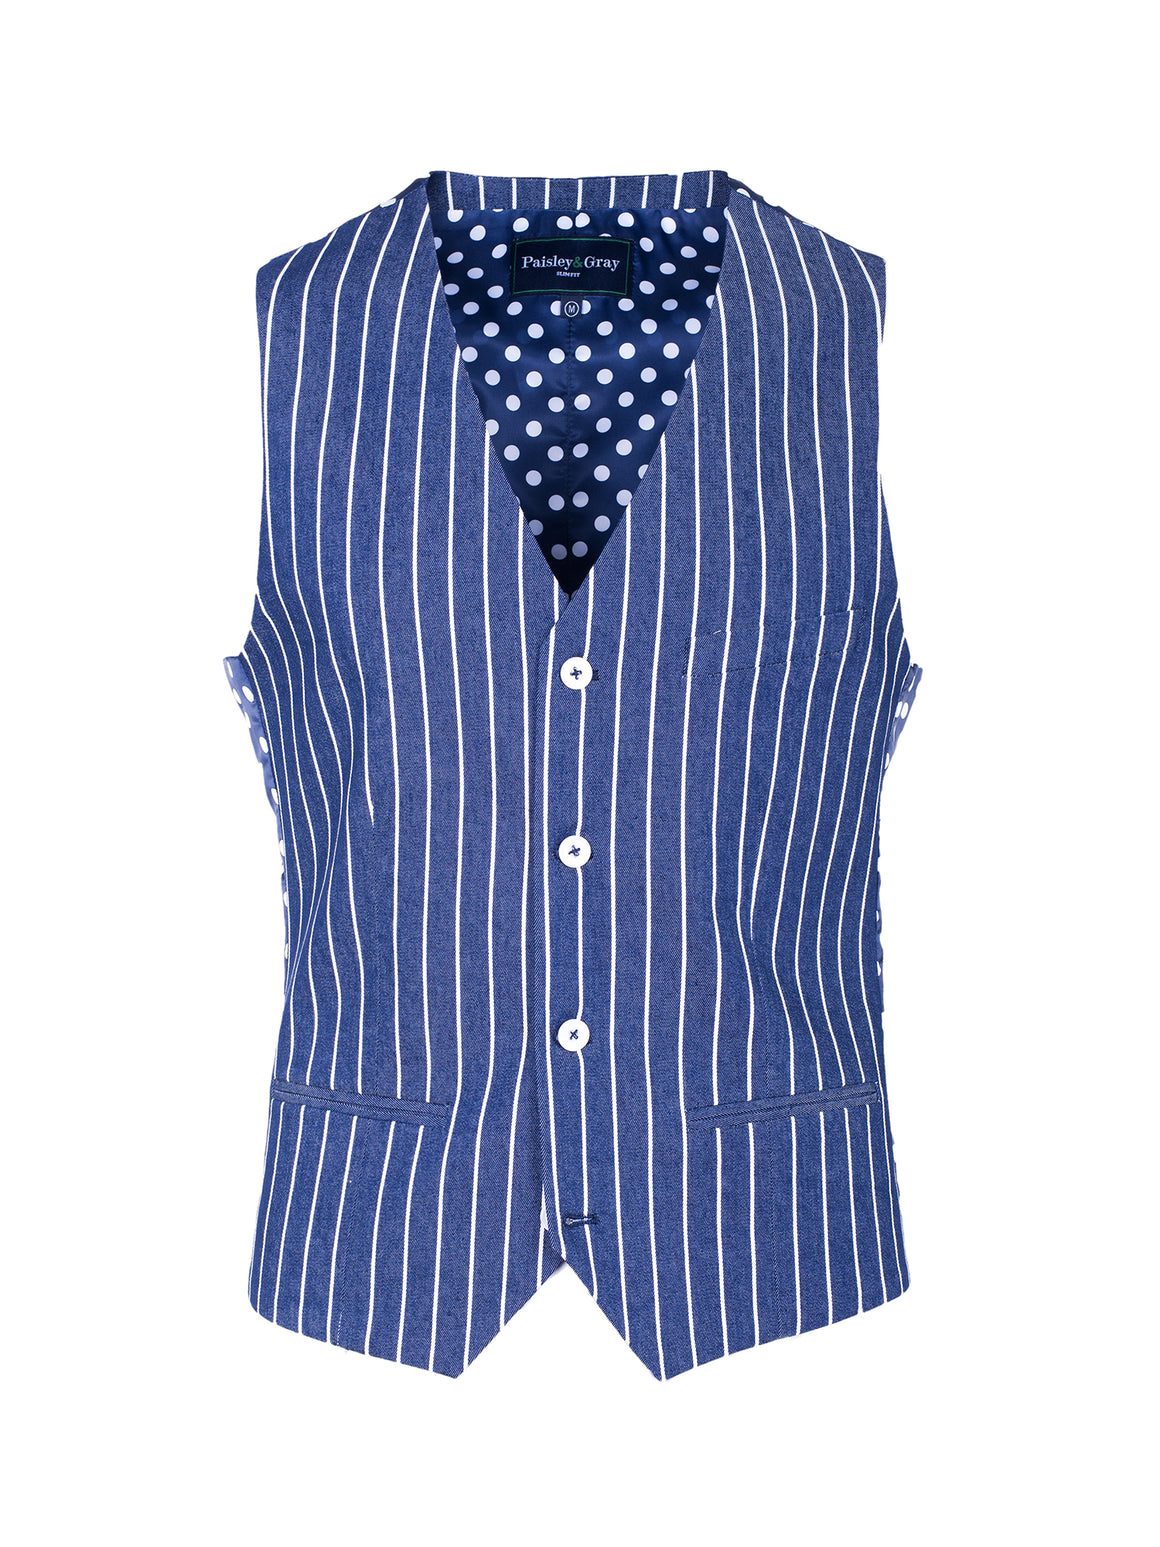 Eaton Vest - Denim & White Stripe